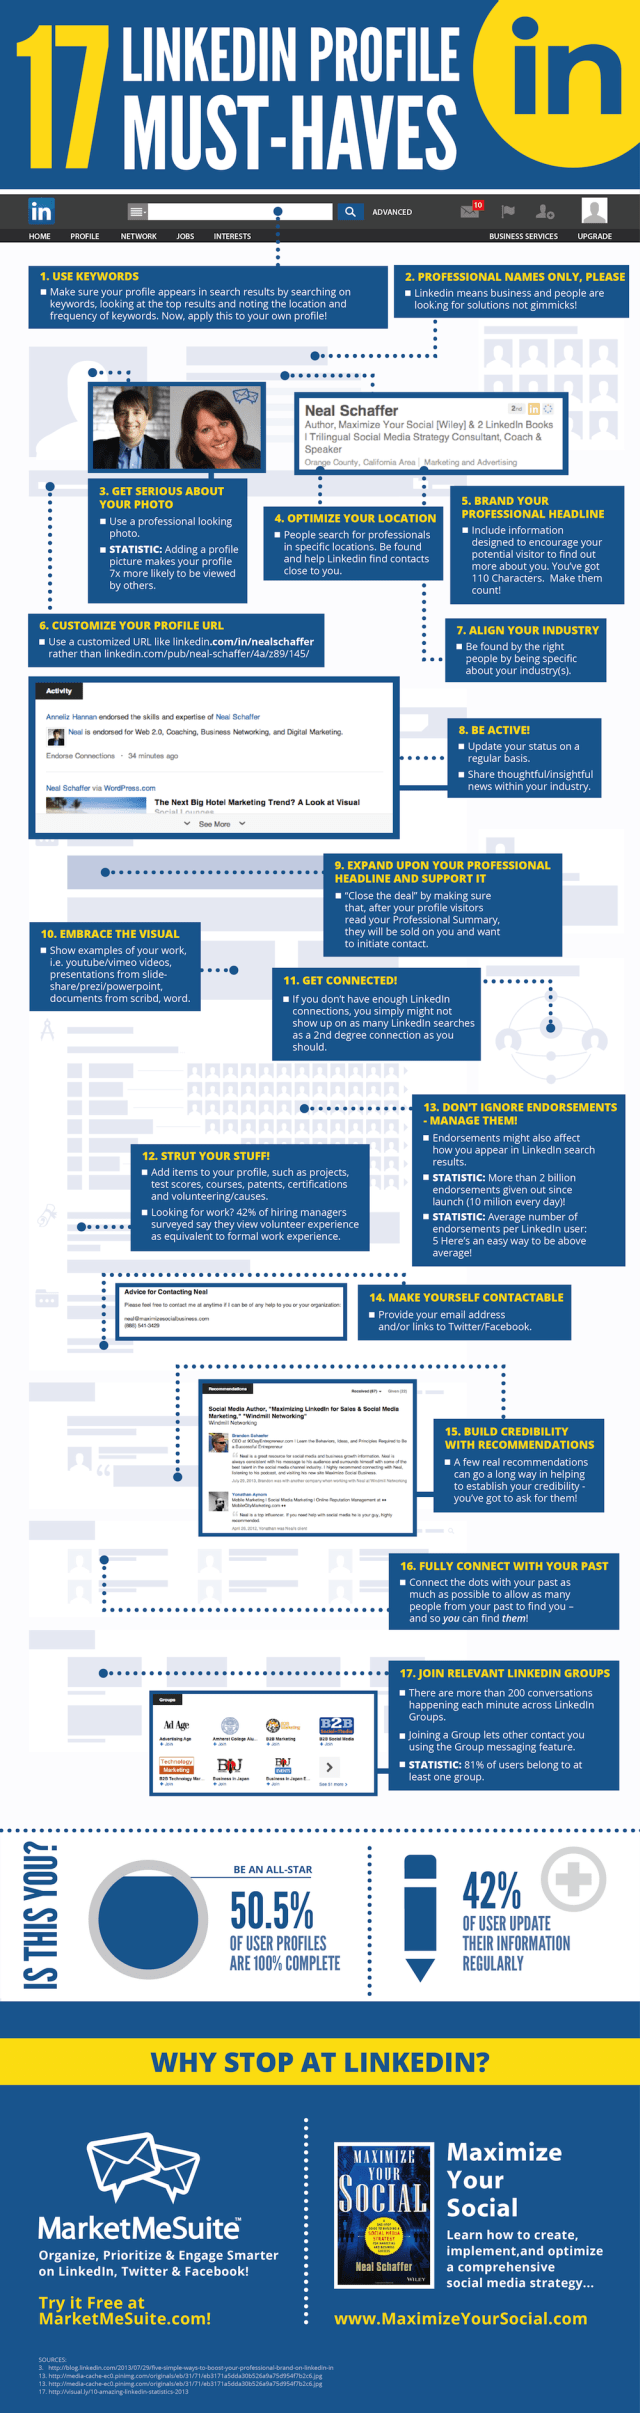 LinkedIn-Perfect-Profile-Tips-Summary-Infographic-11